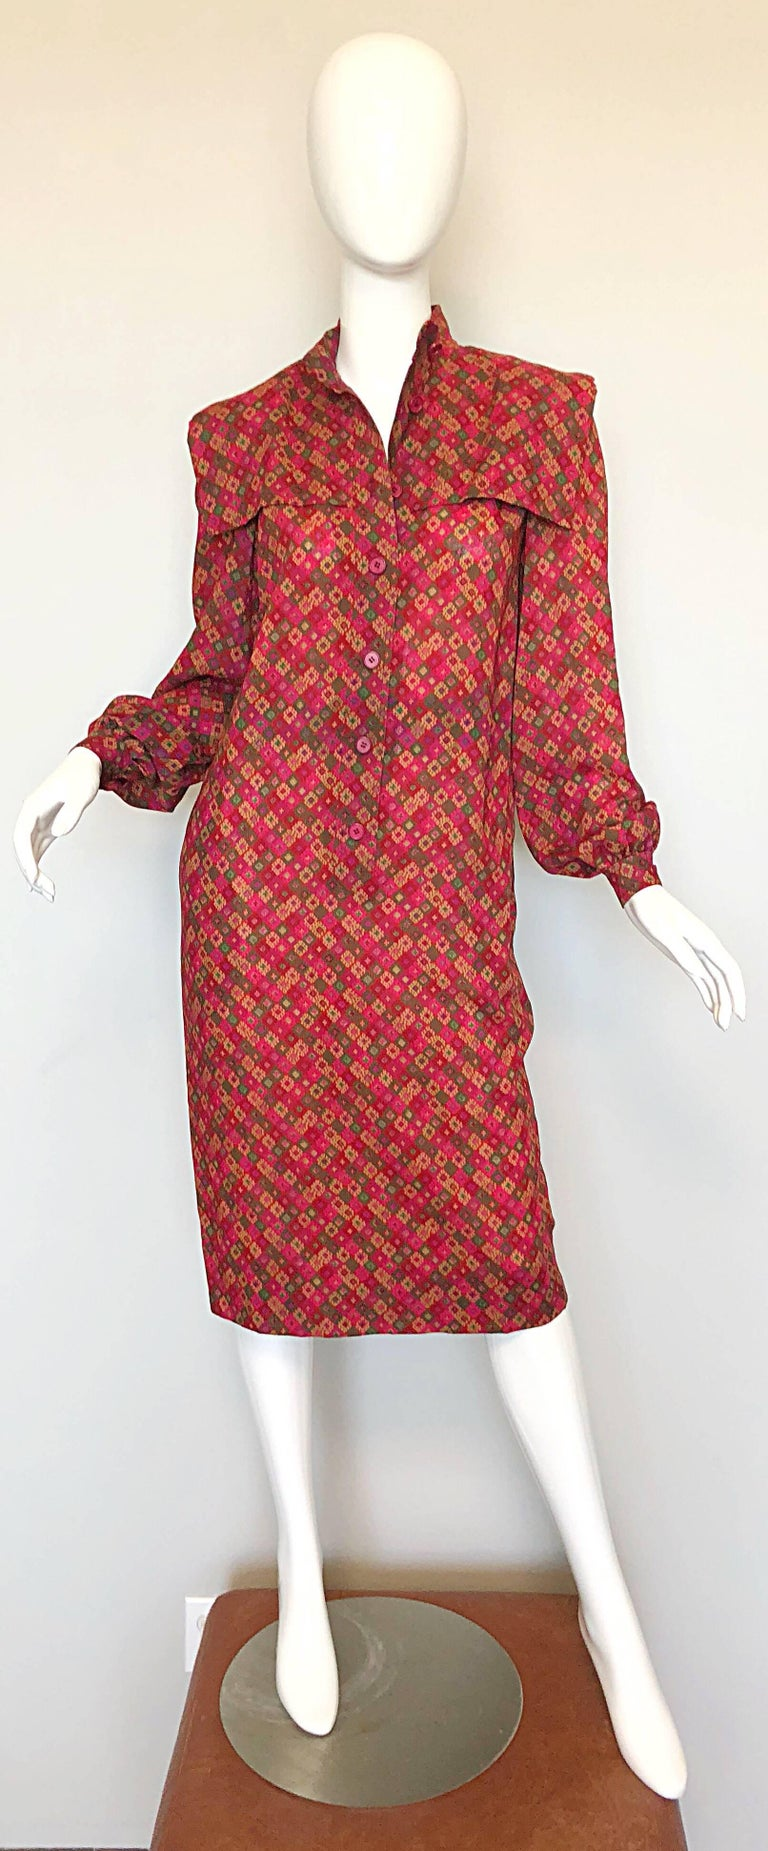 Chic 80s HUBERT DE GIVENCHY lightweight wool sac dress! Since Givenchy s unfortunate death last month, pieces actually designed by the legendary designer have become highly sought after. This beautiful gem was designed by the man